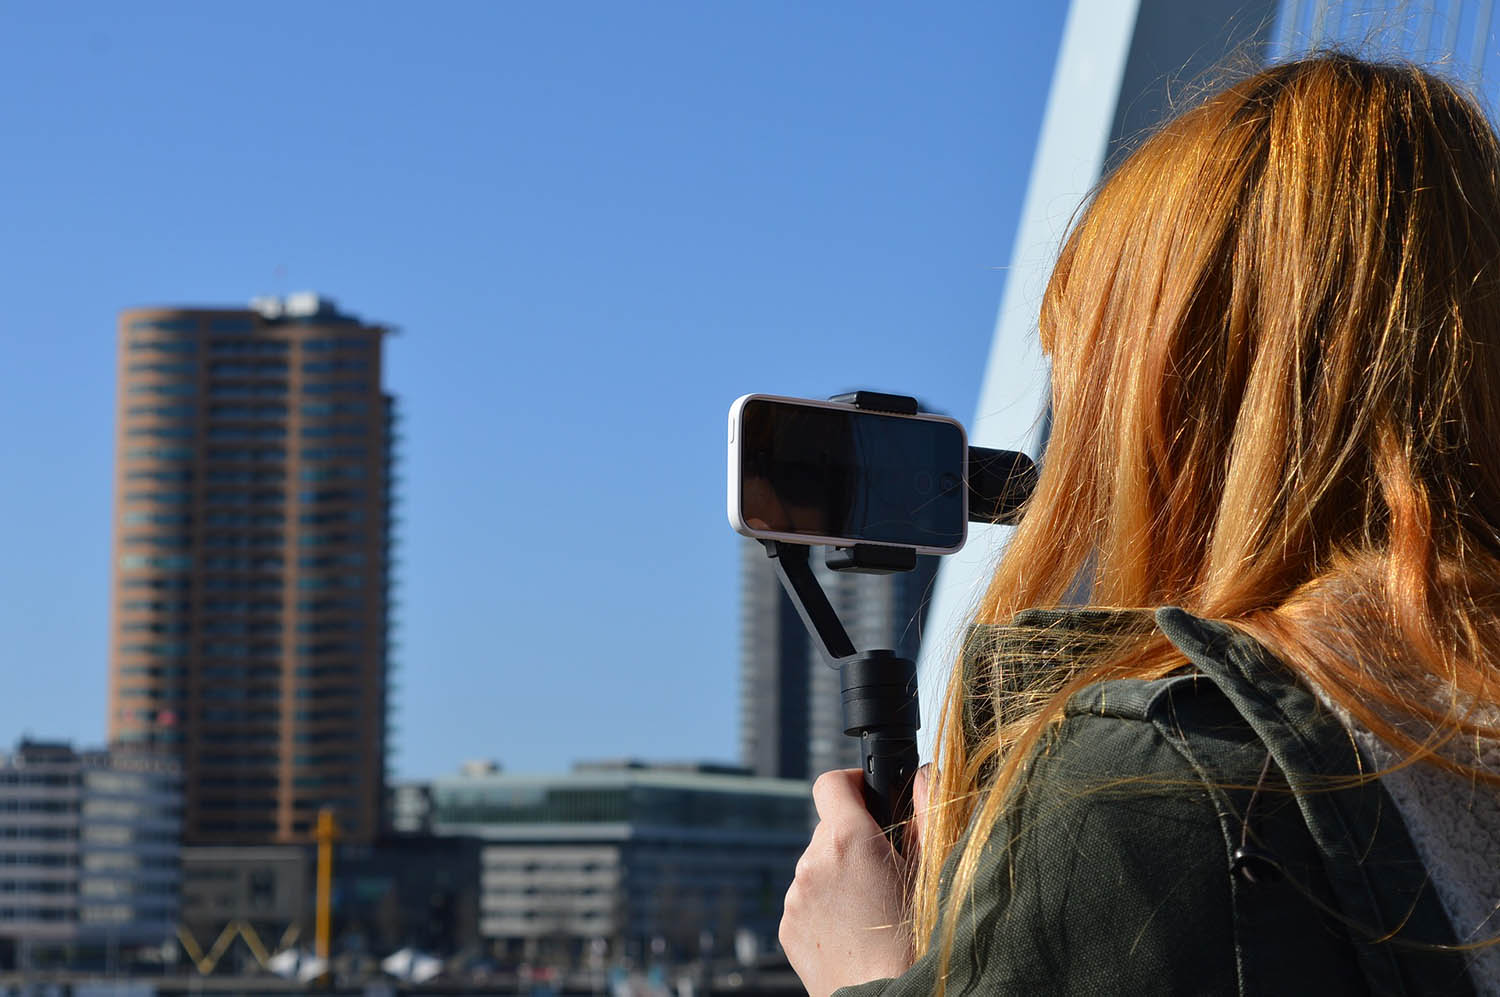 girl using a gimbal smartphone stabilizer